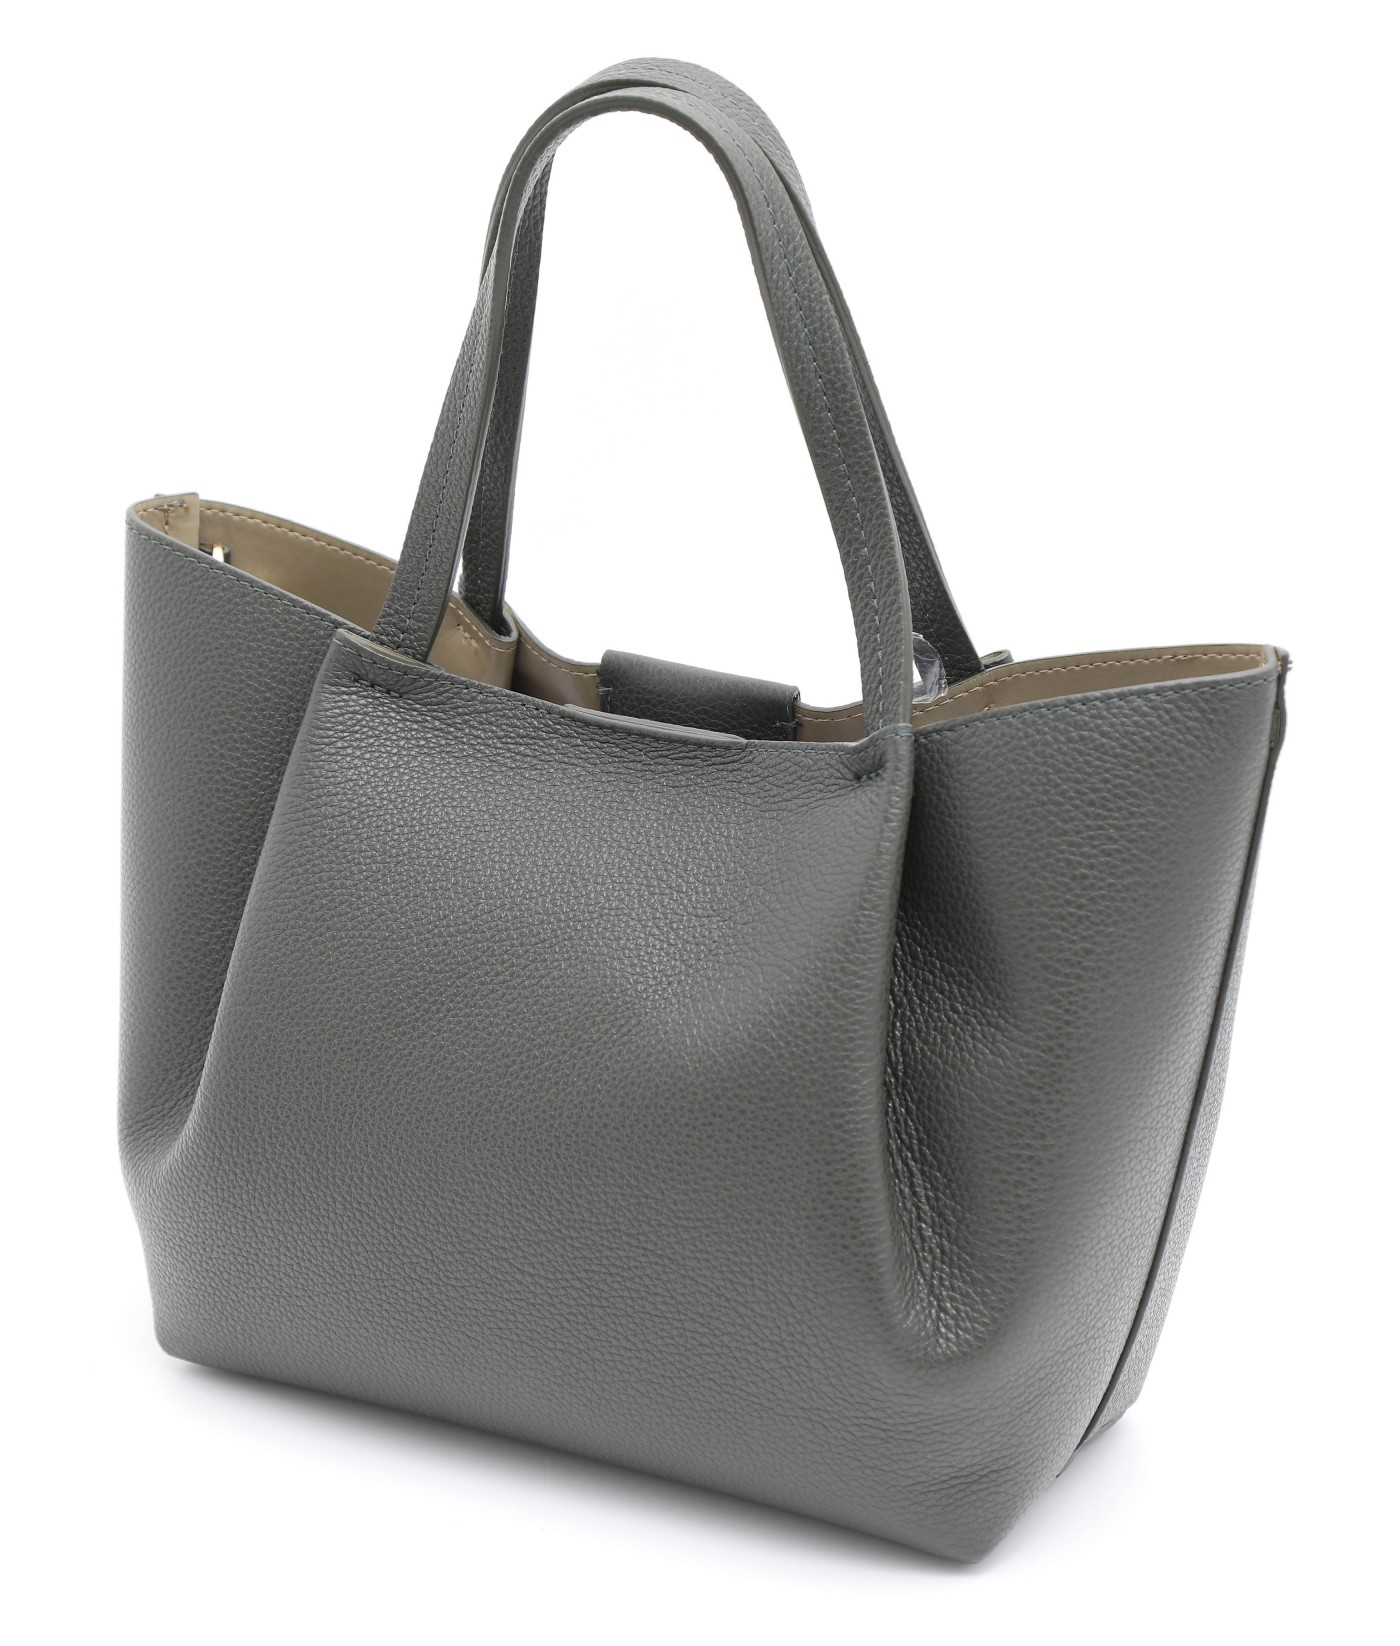 GOIAS SIGNATURE SMALL TOTE (FOREST GREEN)